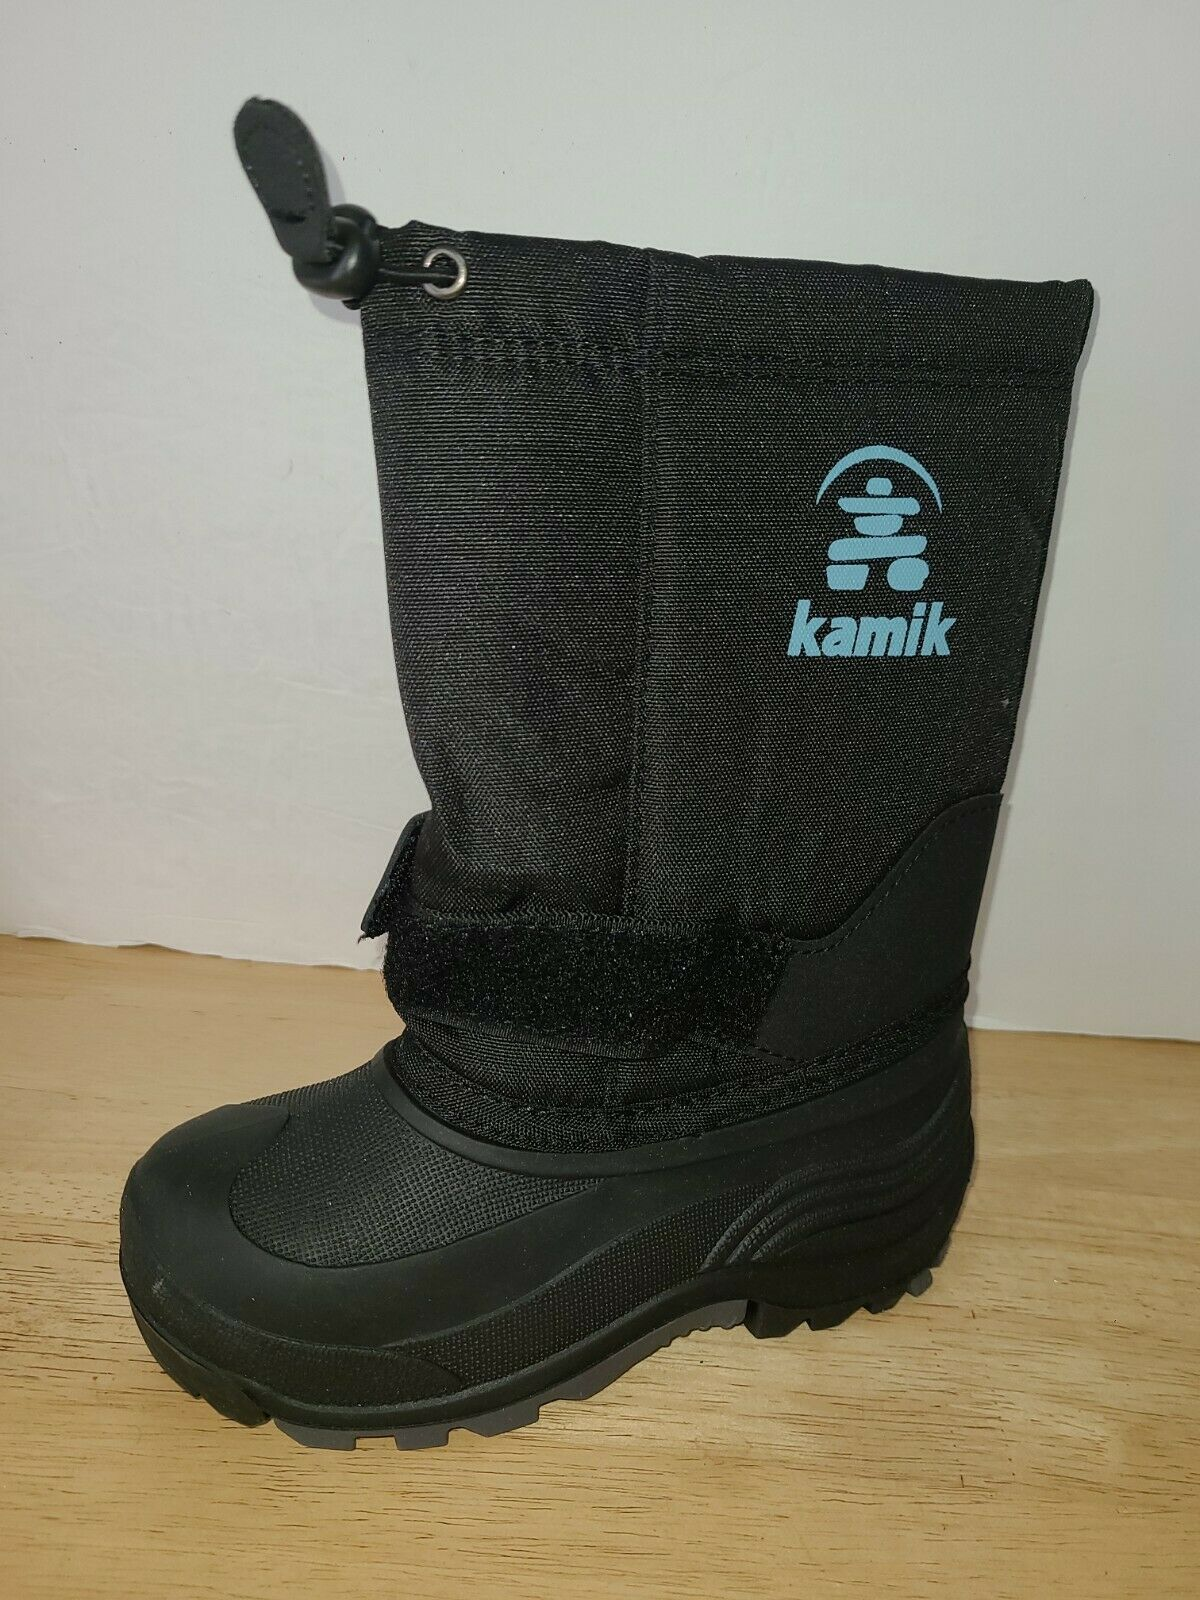 Primary image for kamik kids snow boots Black Size 13